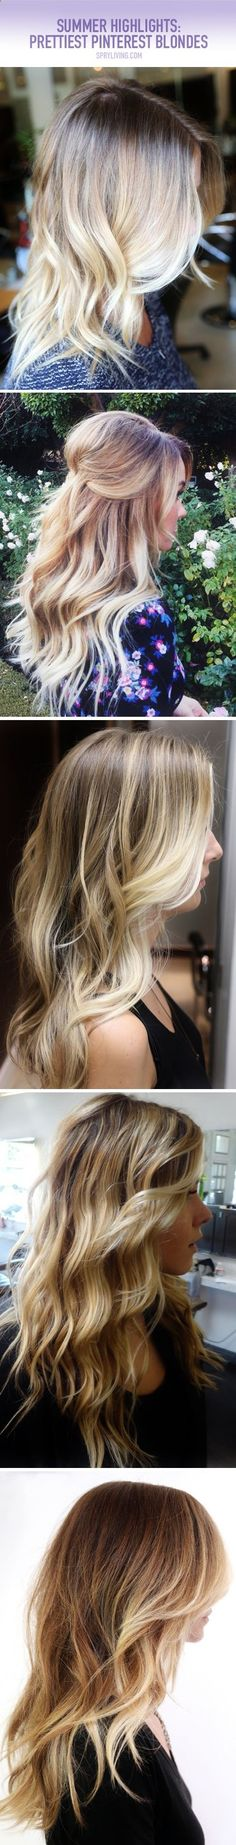 Moms - if youre thinking of highlighting your hair, go the #sombre route. No root maintenance and a true time saver in the salon. | The 15 Prettiest Summer Highlights